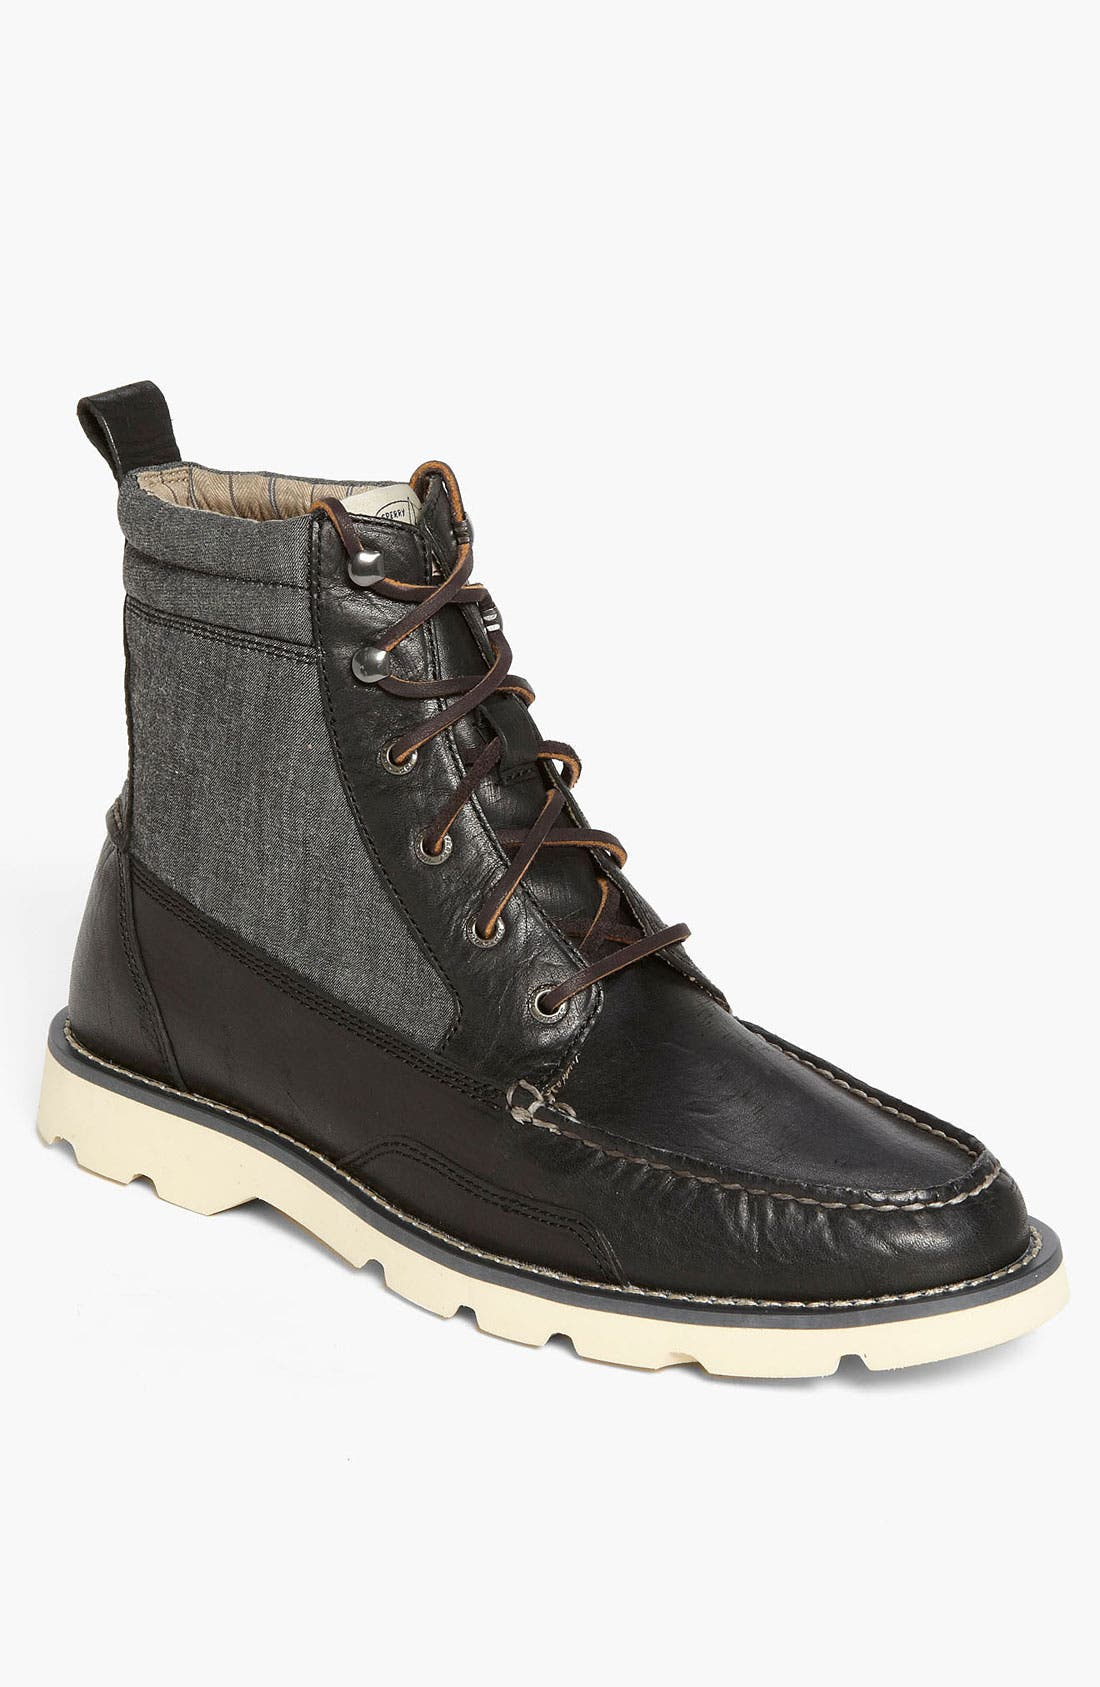 Alternate Image 1 Selected - Sperry Top-Sider® 'Shipyard Rigger' Boot